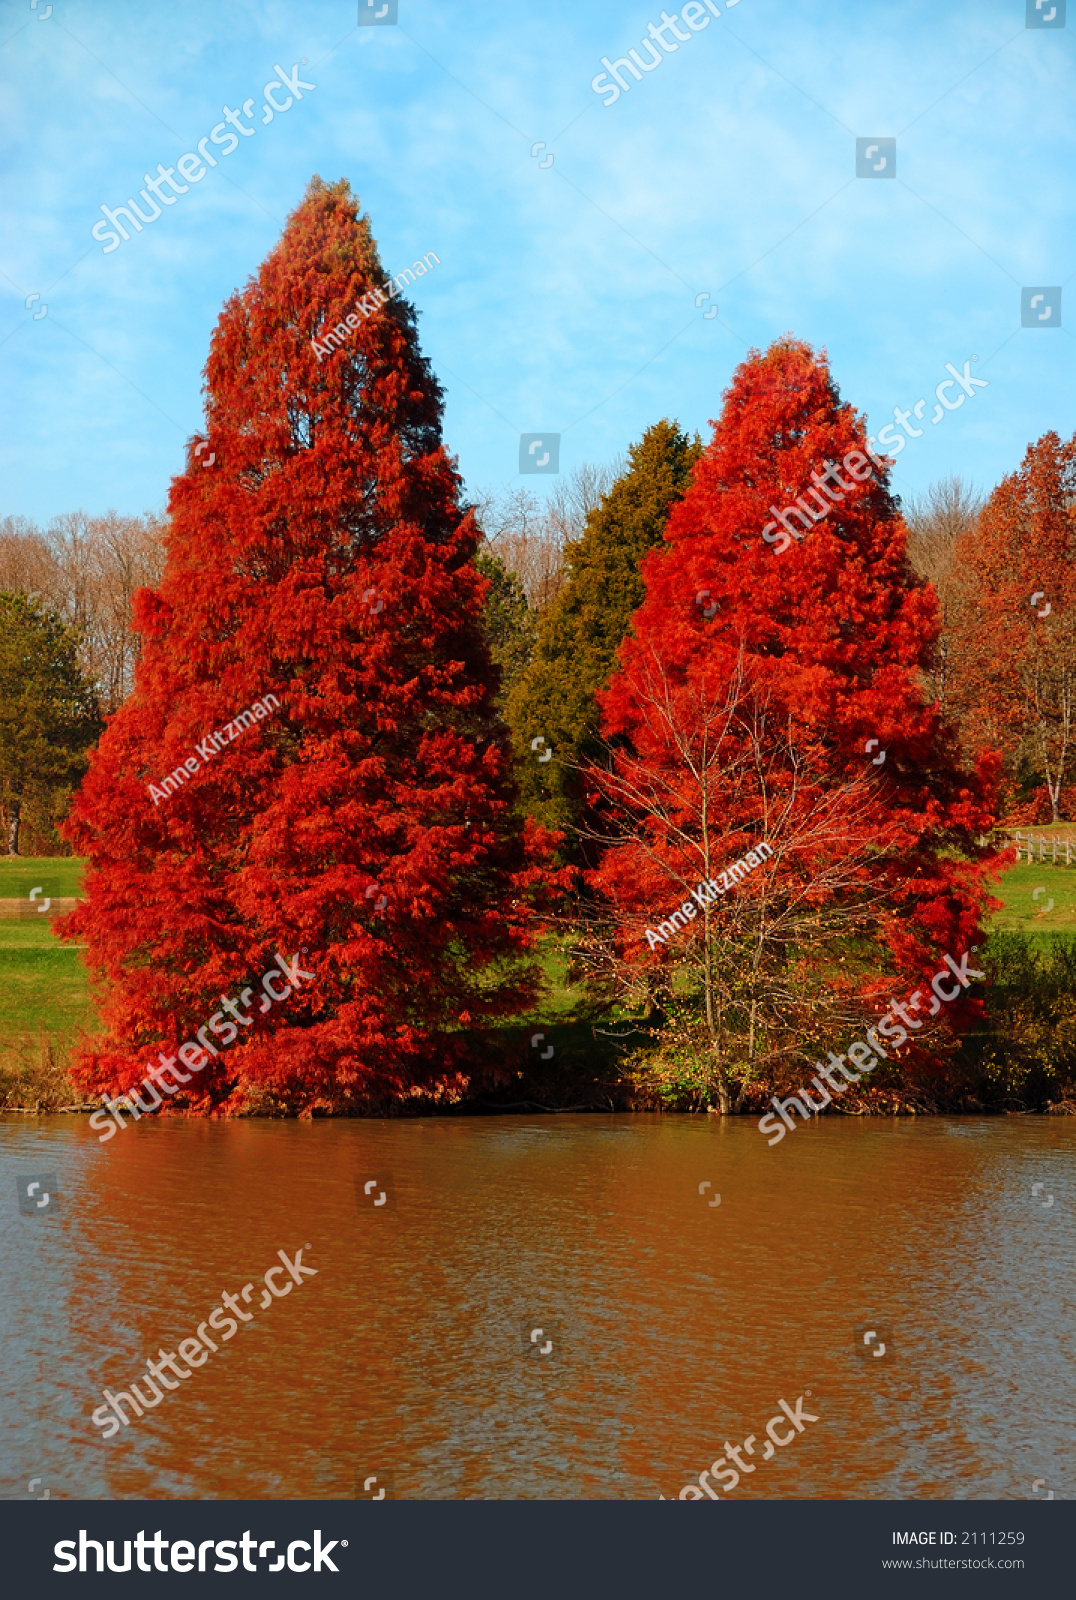 Free Fall Foliage Wallpaper Red Pines Two Pine Trees Red Stock Photo 2111259